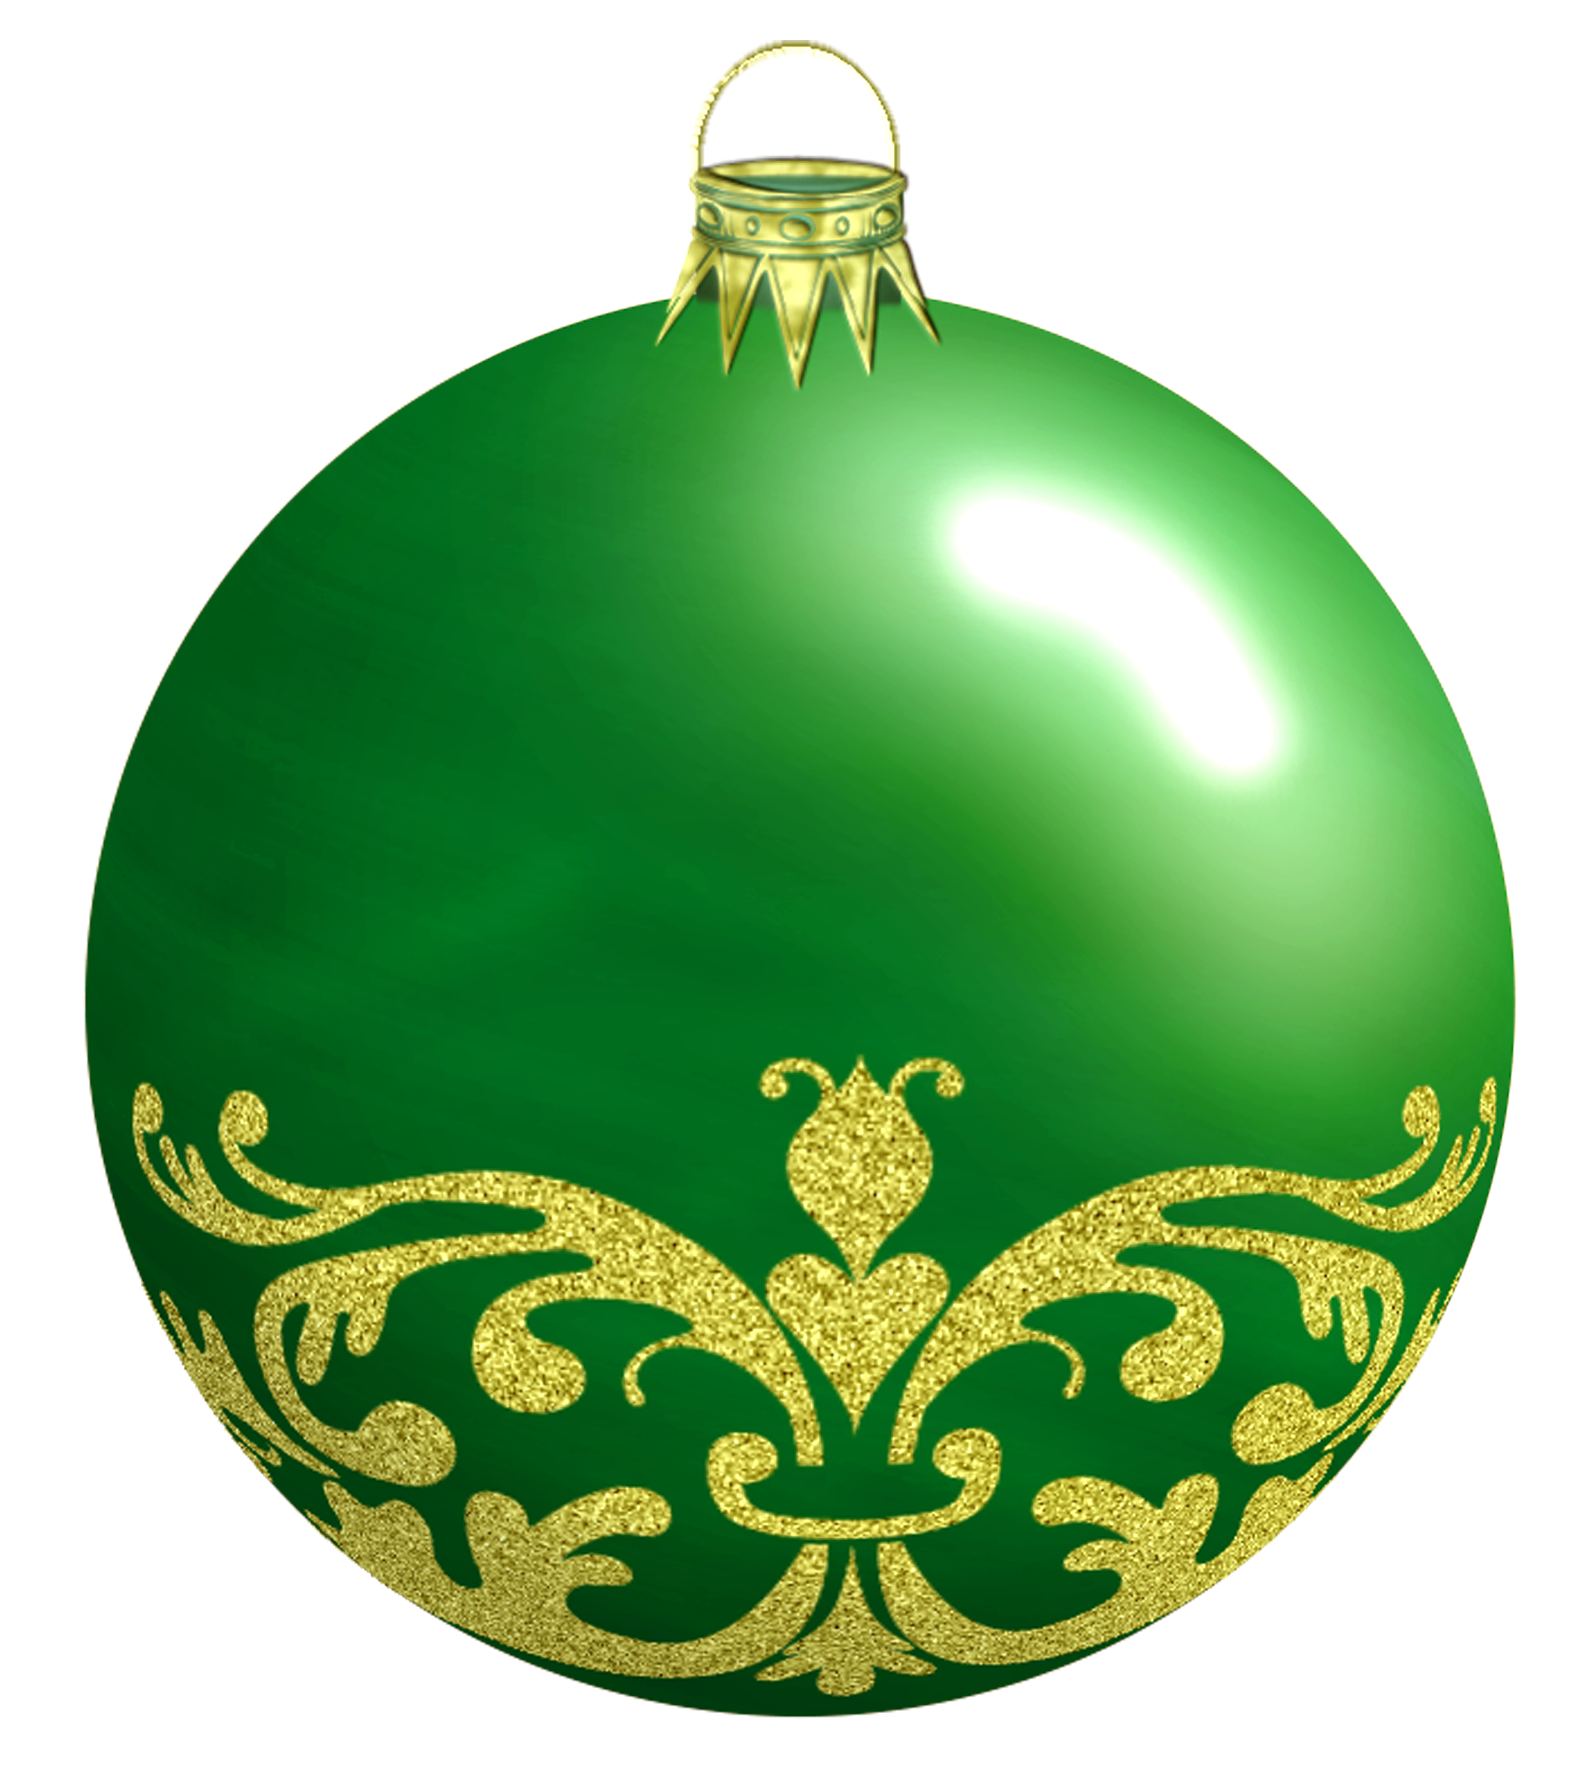 Christmas baubles clipart clipart transparent stock Christmas Bauble PNG Image - PurePNG | Free transparent CC0 PNG ... clipart transparent stock